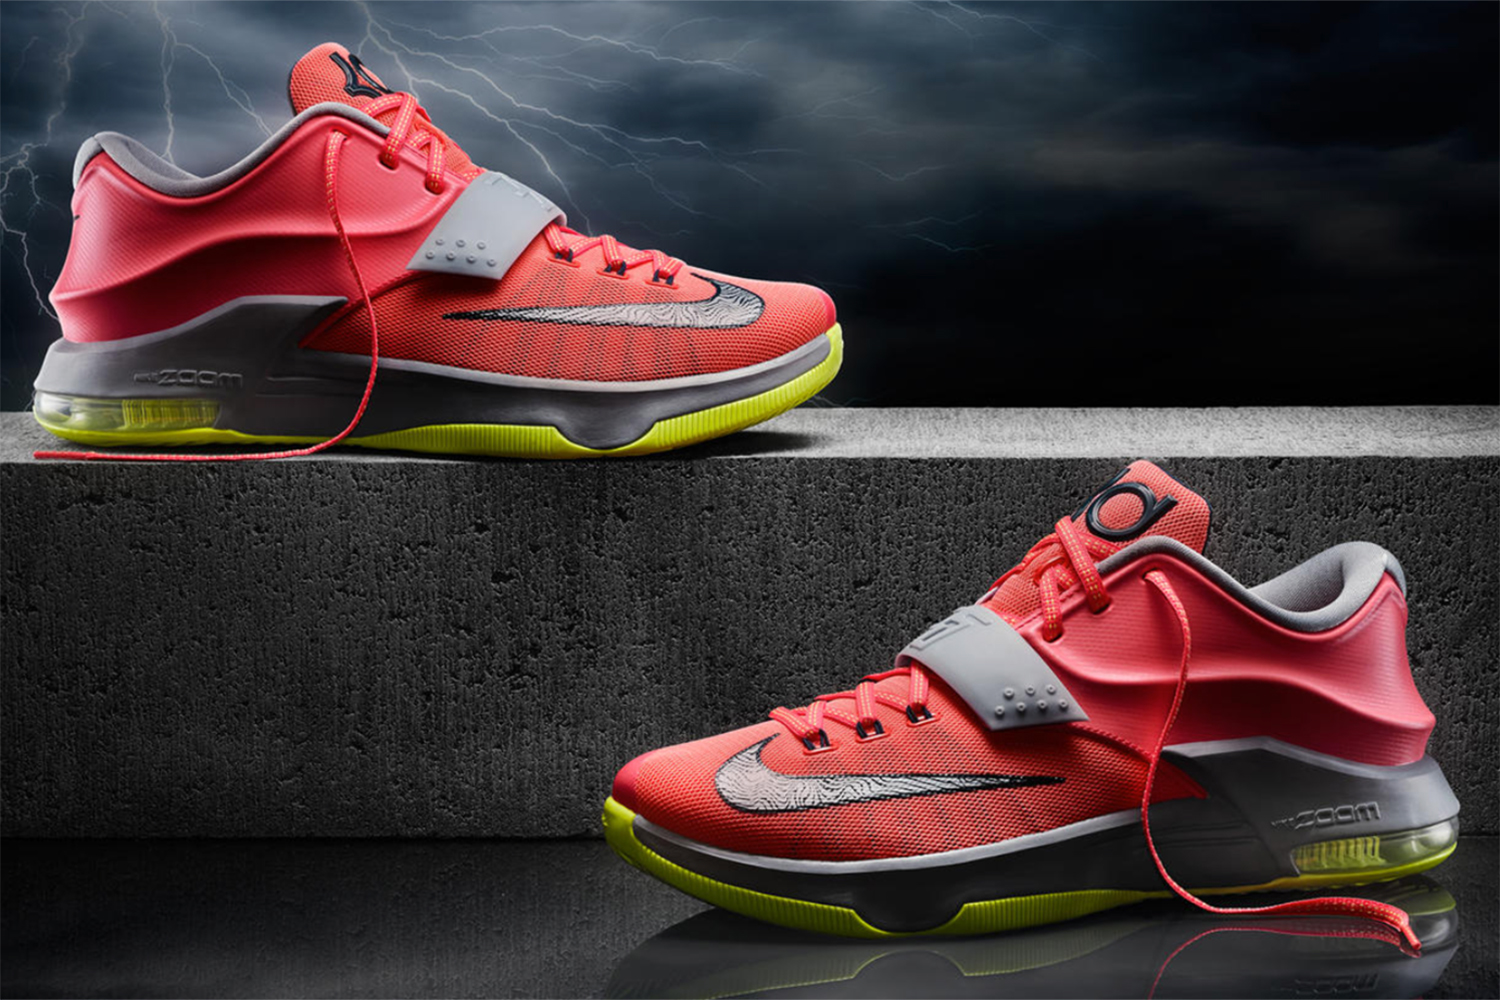 Oh, how we love the strap. The KD7 strap gives such a playful style to the technology-full seventh signature for Kevin Durant. From multiple cushioning technologies to ventilated mesh and Flywire cabling to durable Hyperposite, the technology allows the KD7 to shine, all while the myriad of colorways gives us all kinds of KD-inspired looks—including with weather-influenced designs. But the best part? That strap.